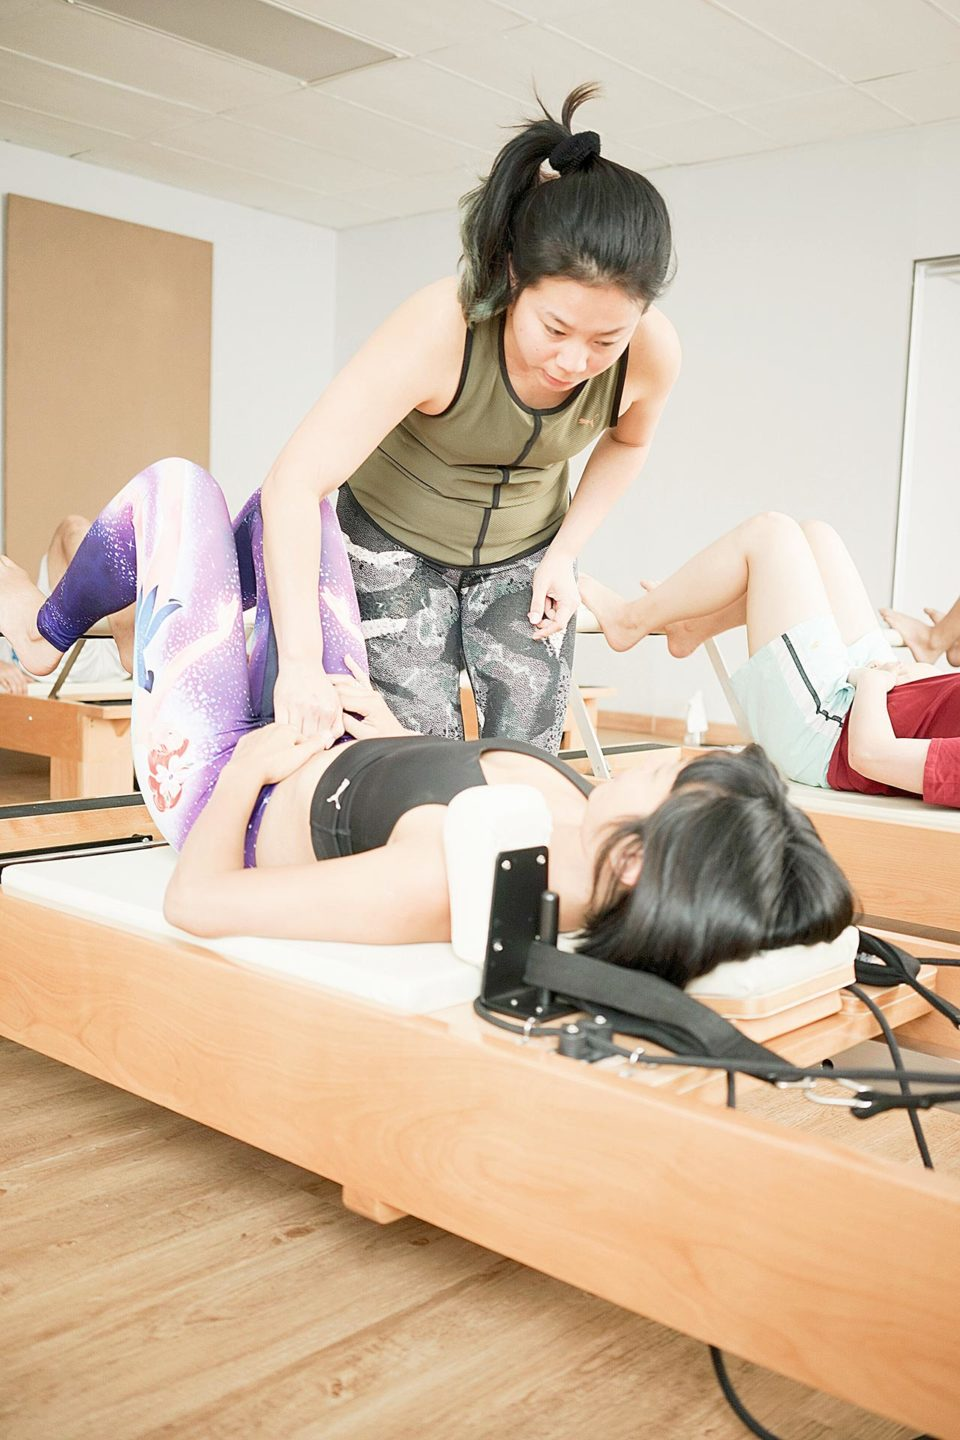 An Instructor helps a client to engage their core (the transverse abdominus) during Clinical reformer training.